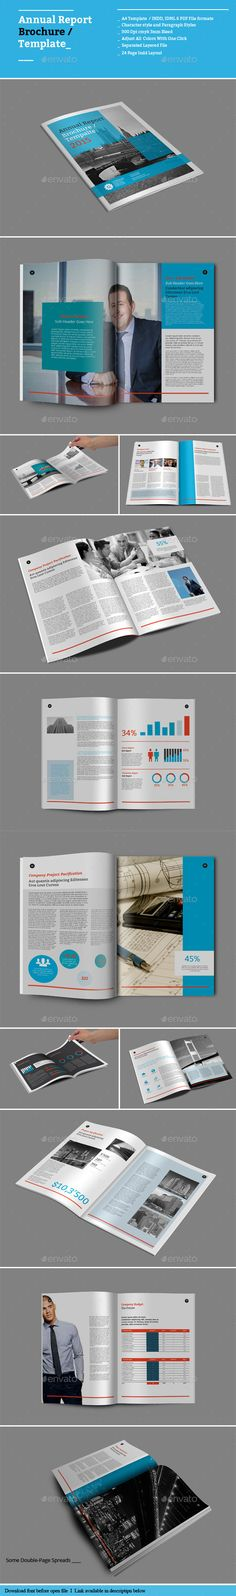 Annual Report Word Annual reports, Brochures and Brochure template - annual report template design